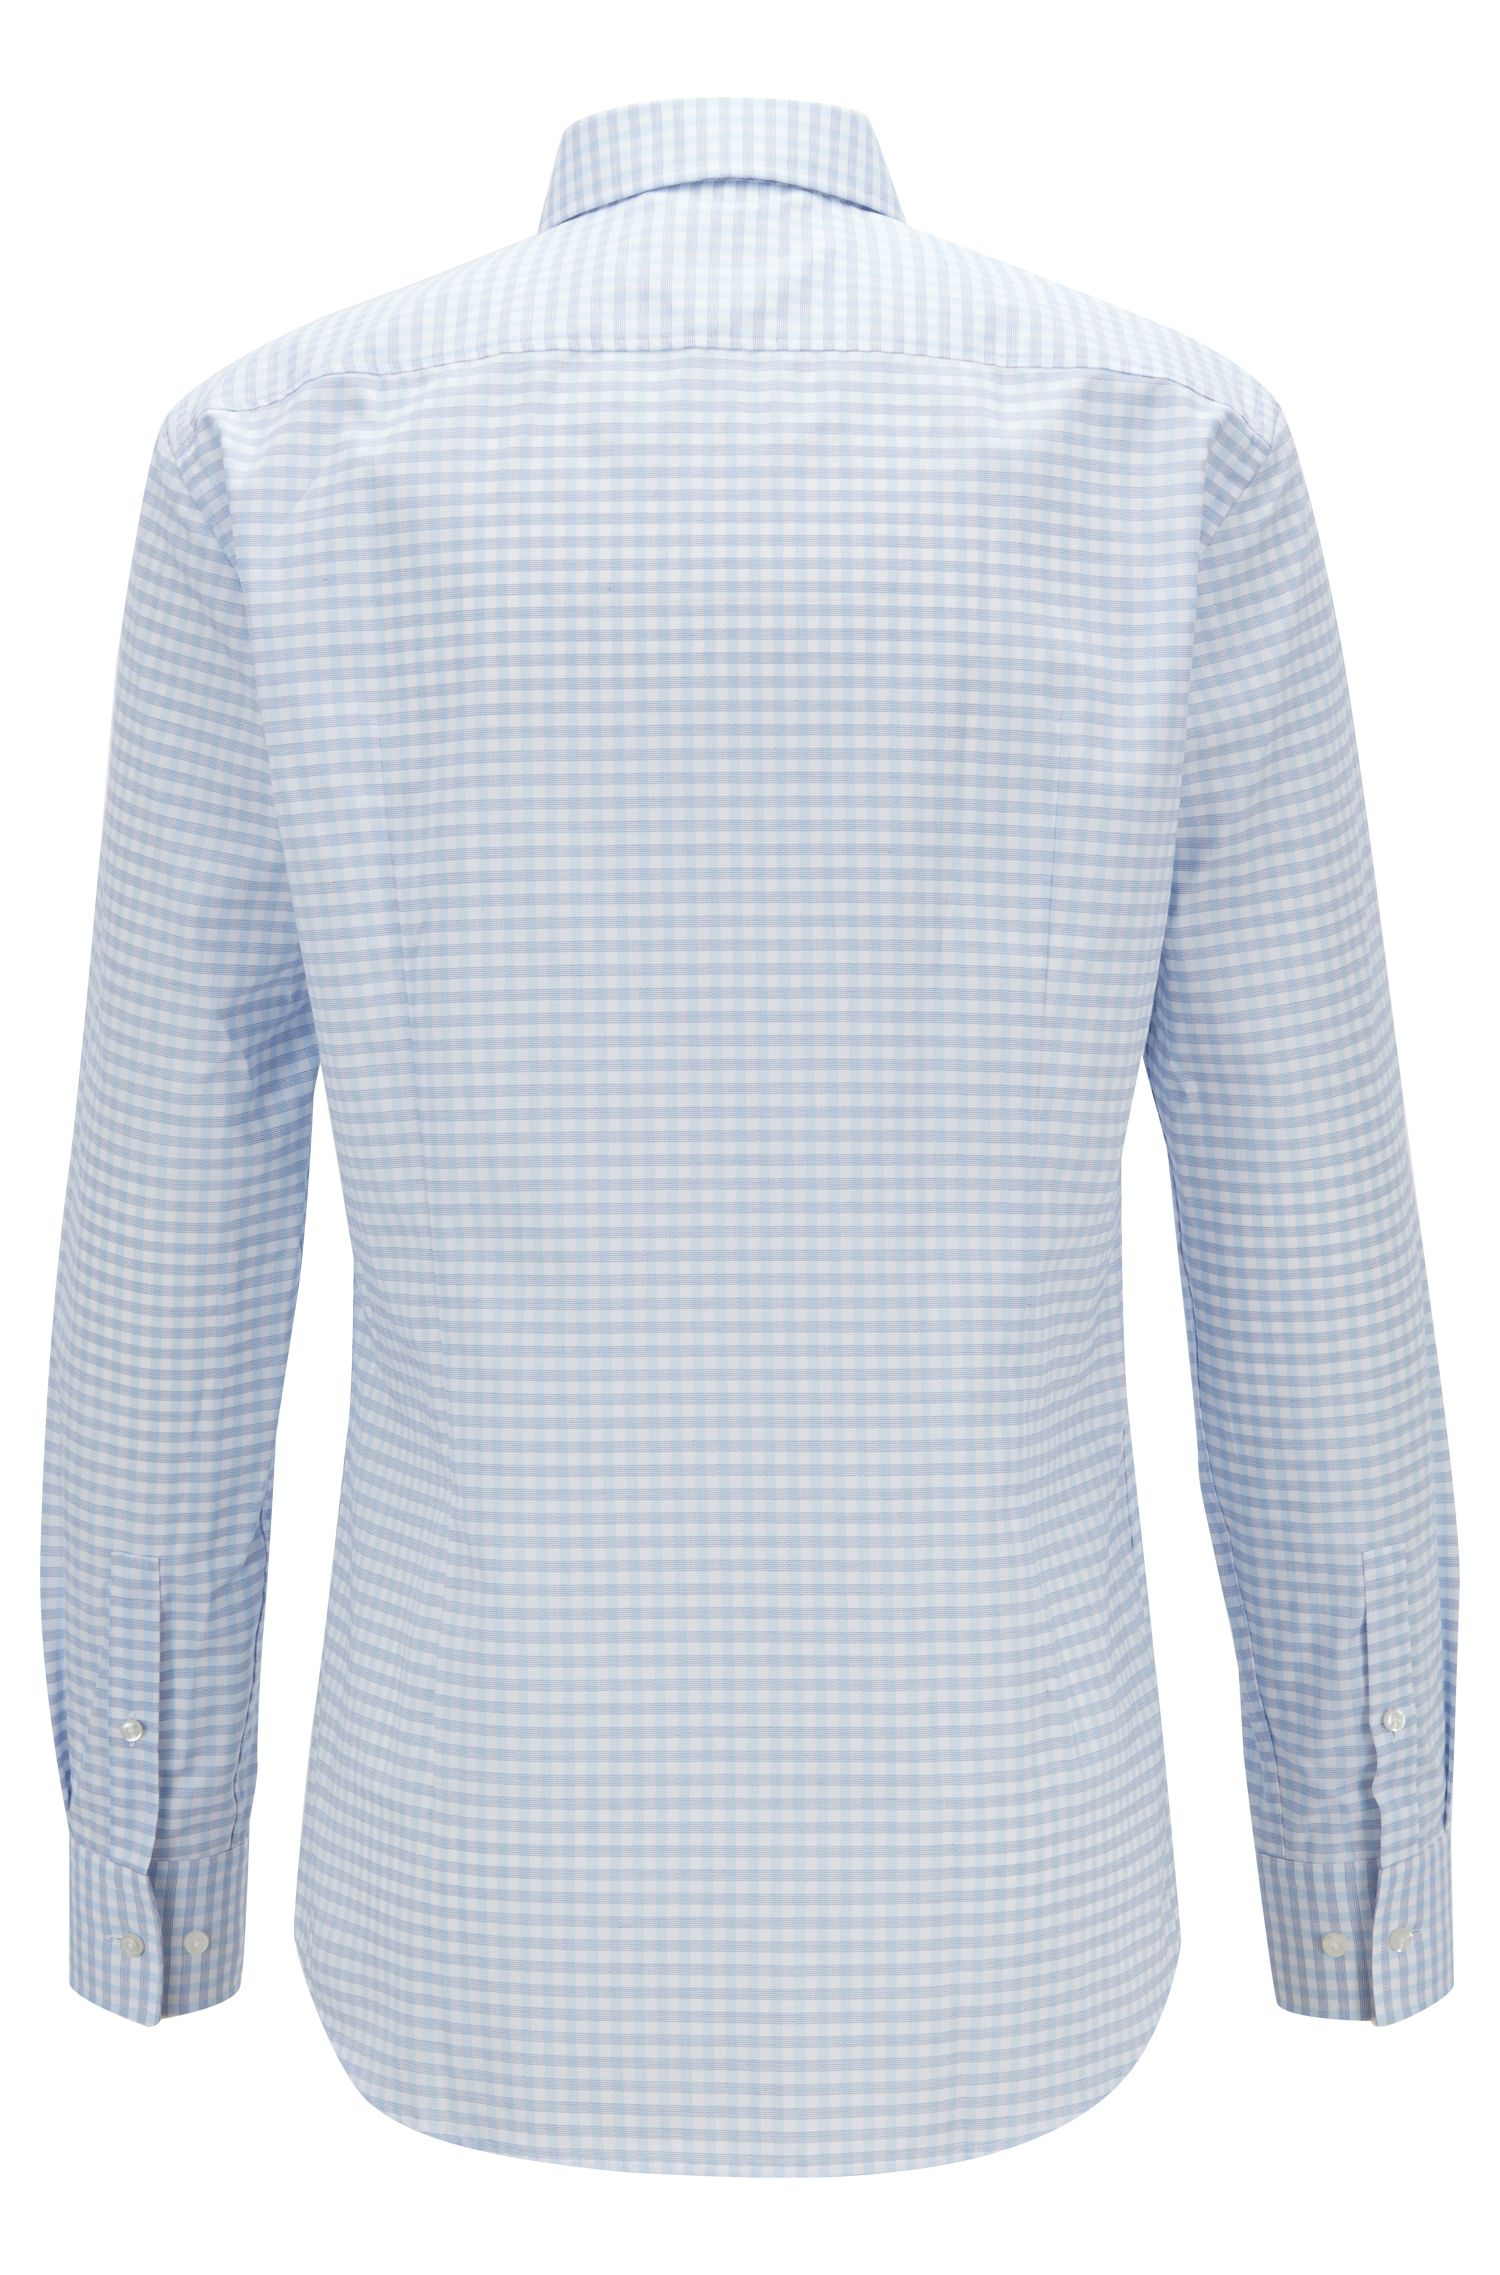 Vichy-check slim-fit shirt with Coolest Comfort finishing, Blue